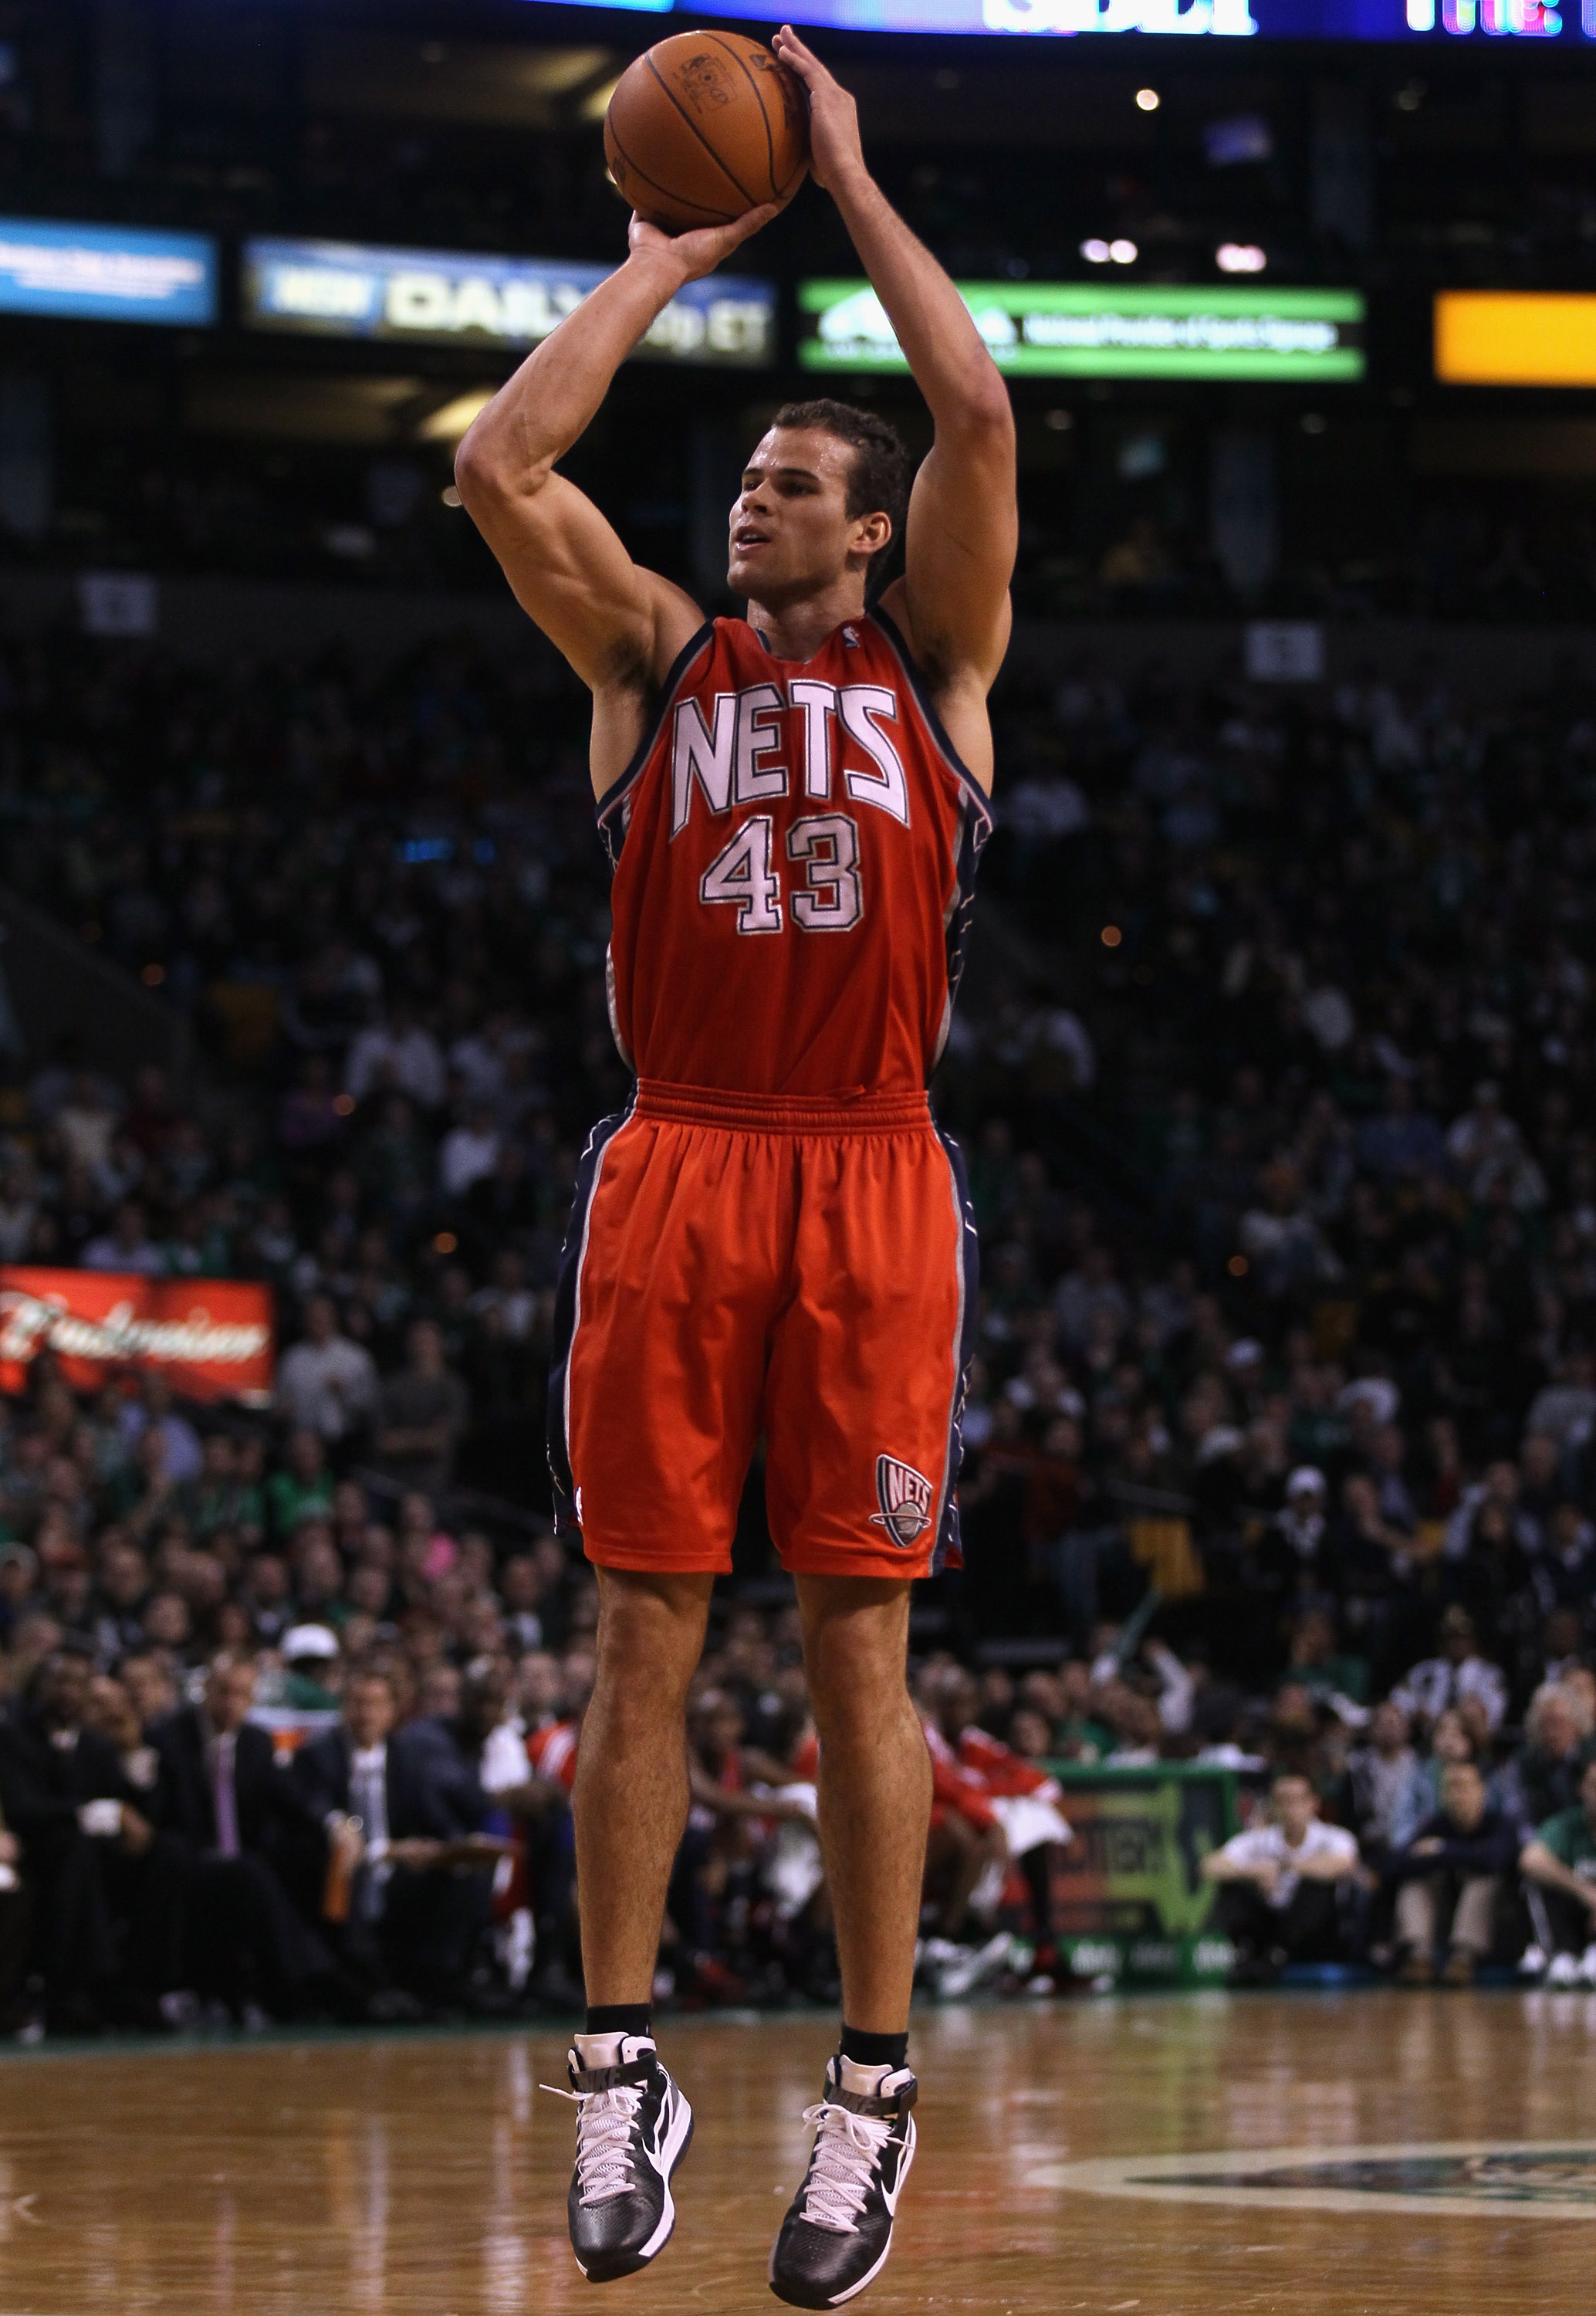 BOSTON - NOVEMBER 24:  Kris Humphries #43 of the New Jersey Nets takes a shot in the second half against the Boston Celtics on November 24, 2010 at the TD Garden in Boston, Massachusetts. The Celtics defeated the nets 89-83. NOTE TO USER: User expressly a